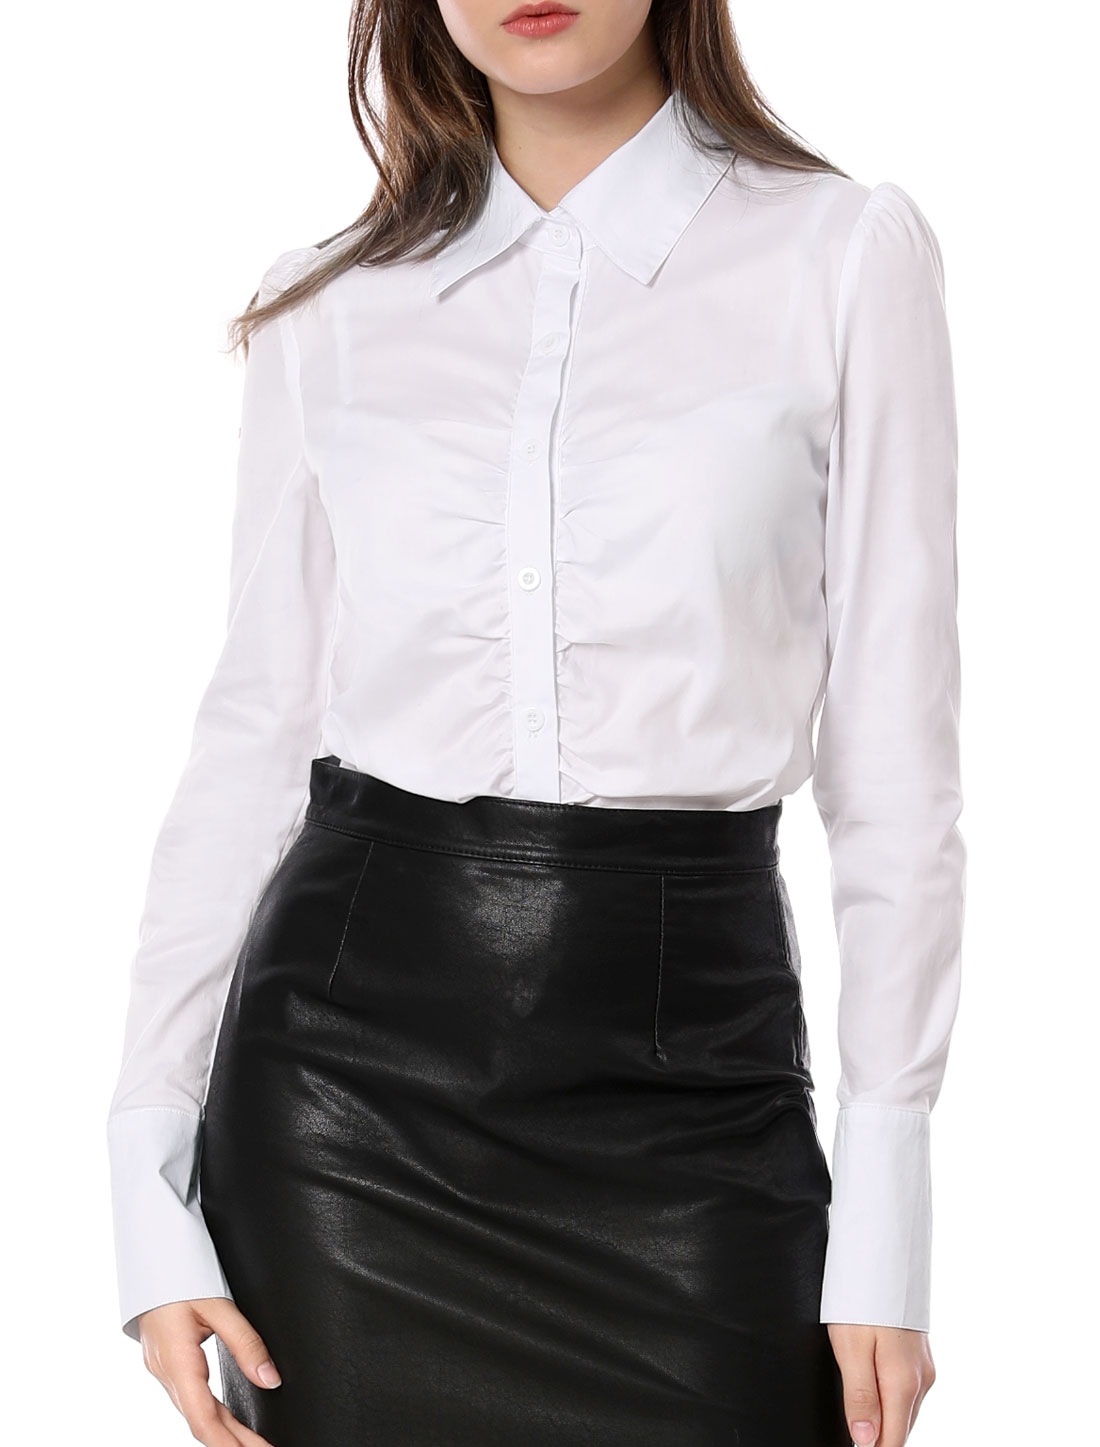 Lady Chic Point Collar Long Sleeve Pure White Career Blouse L